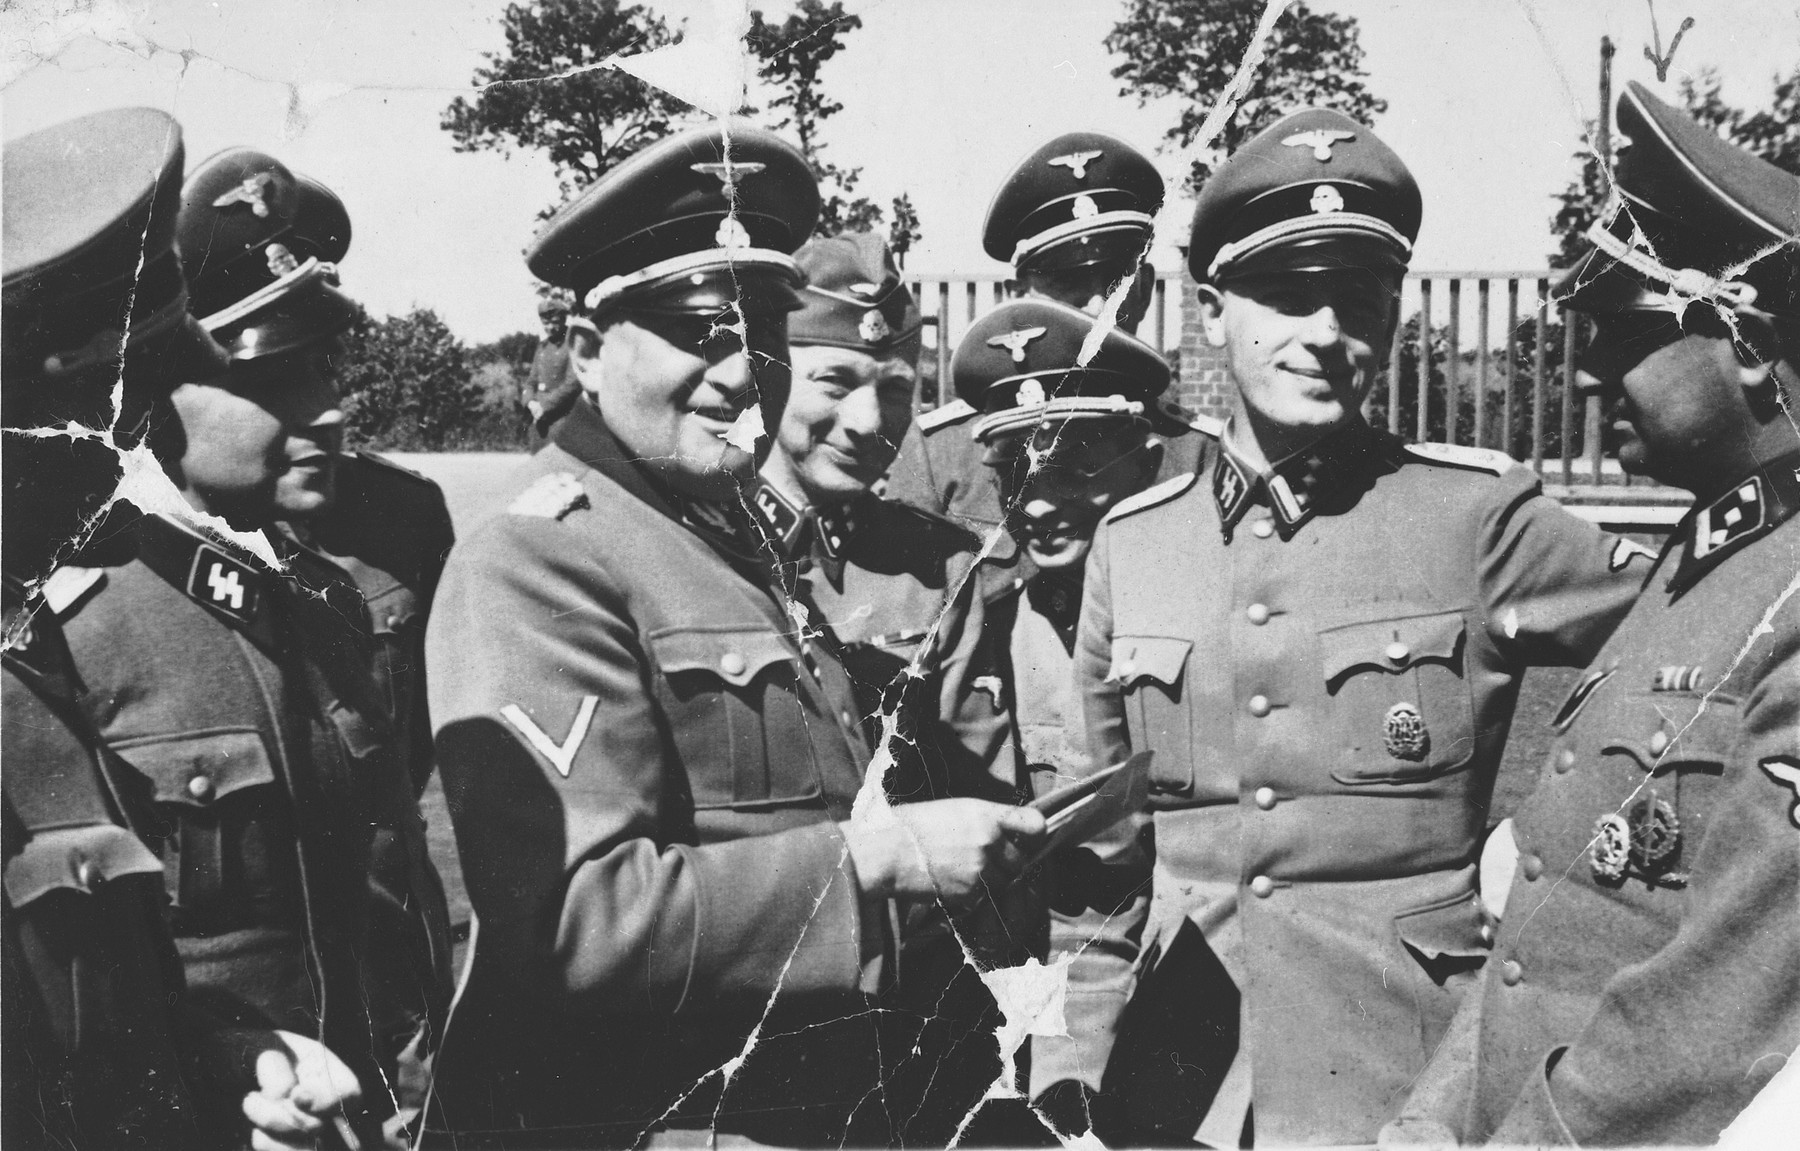 A group of SS officers gather together [probably in Dachau].  Pictured on the far right is Martin Gottfried Weiss.  Richard Gluecks is in the center facing to the right.